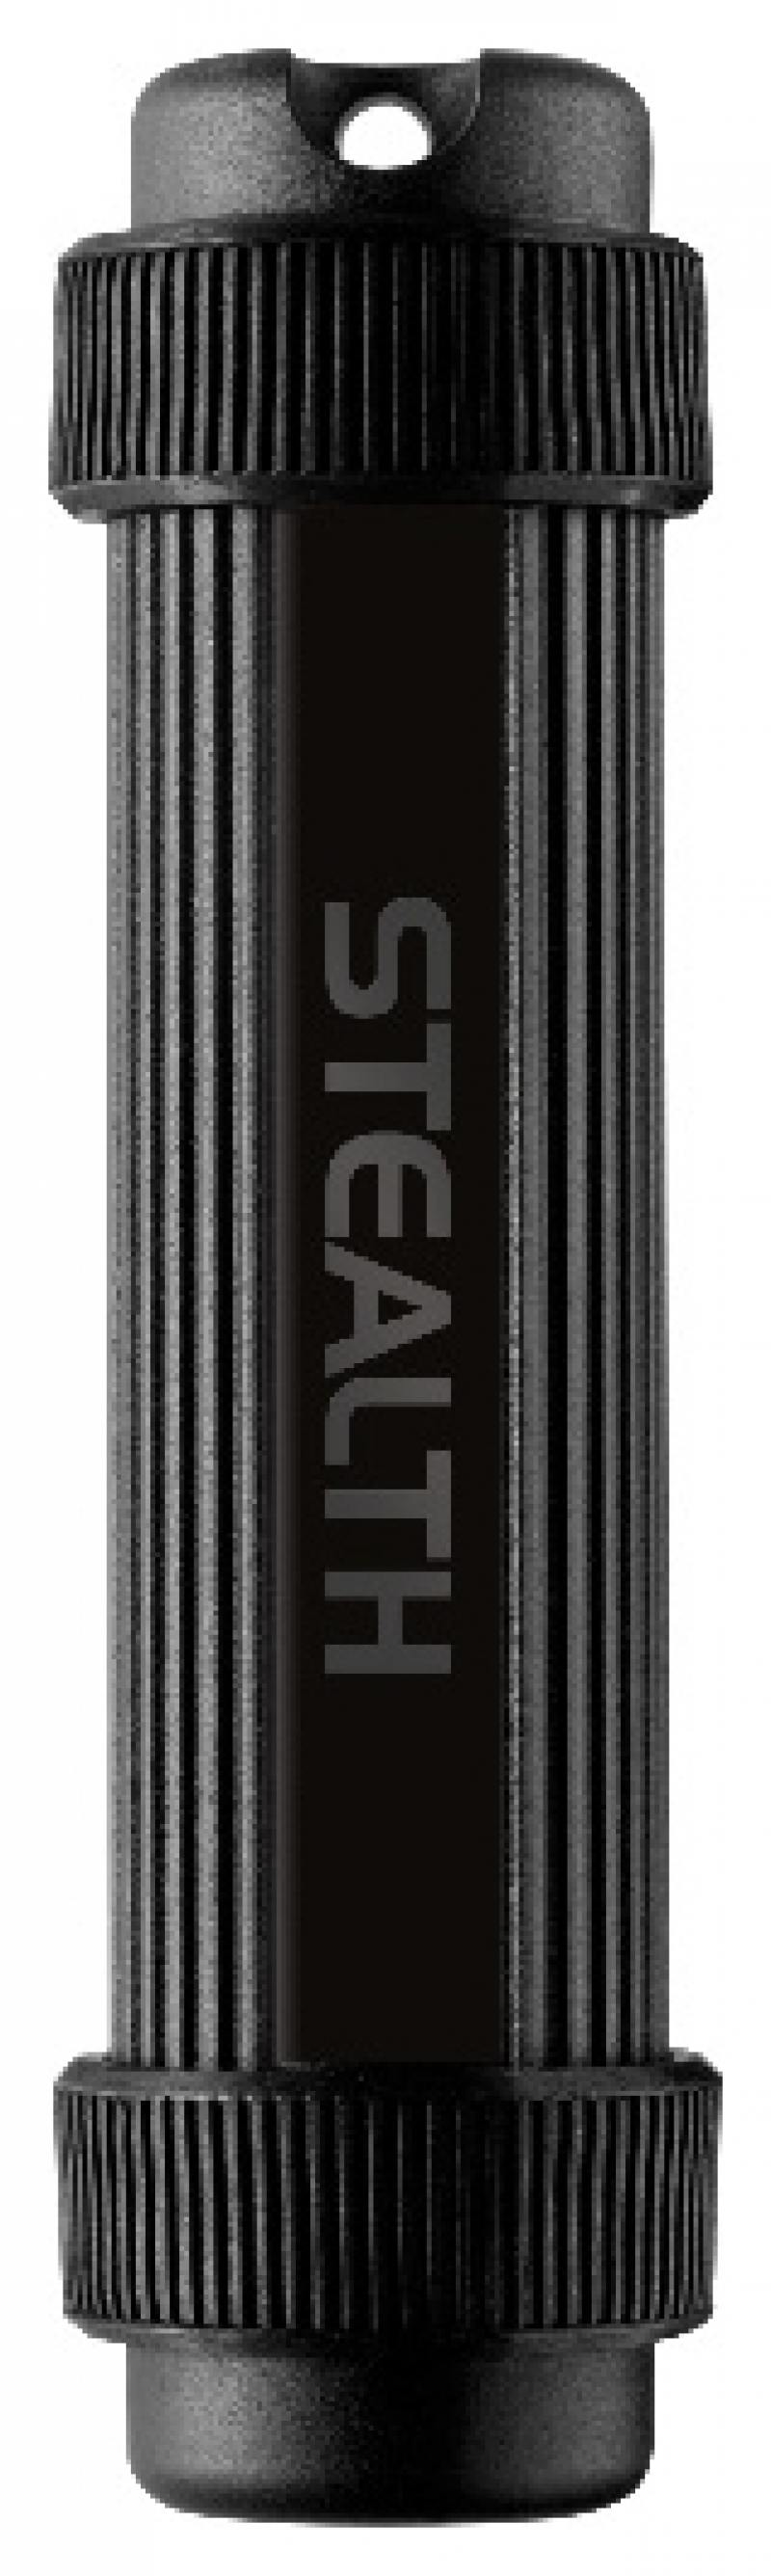 Флешка USB 256Gb Corsair Survivor Stealth CMFSS3B-256GB черный флешка usb corsair survivor stealth 32гб usb3 0 черный [cmfss3b 32gb]